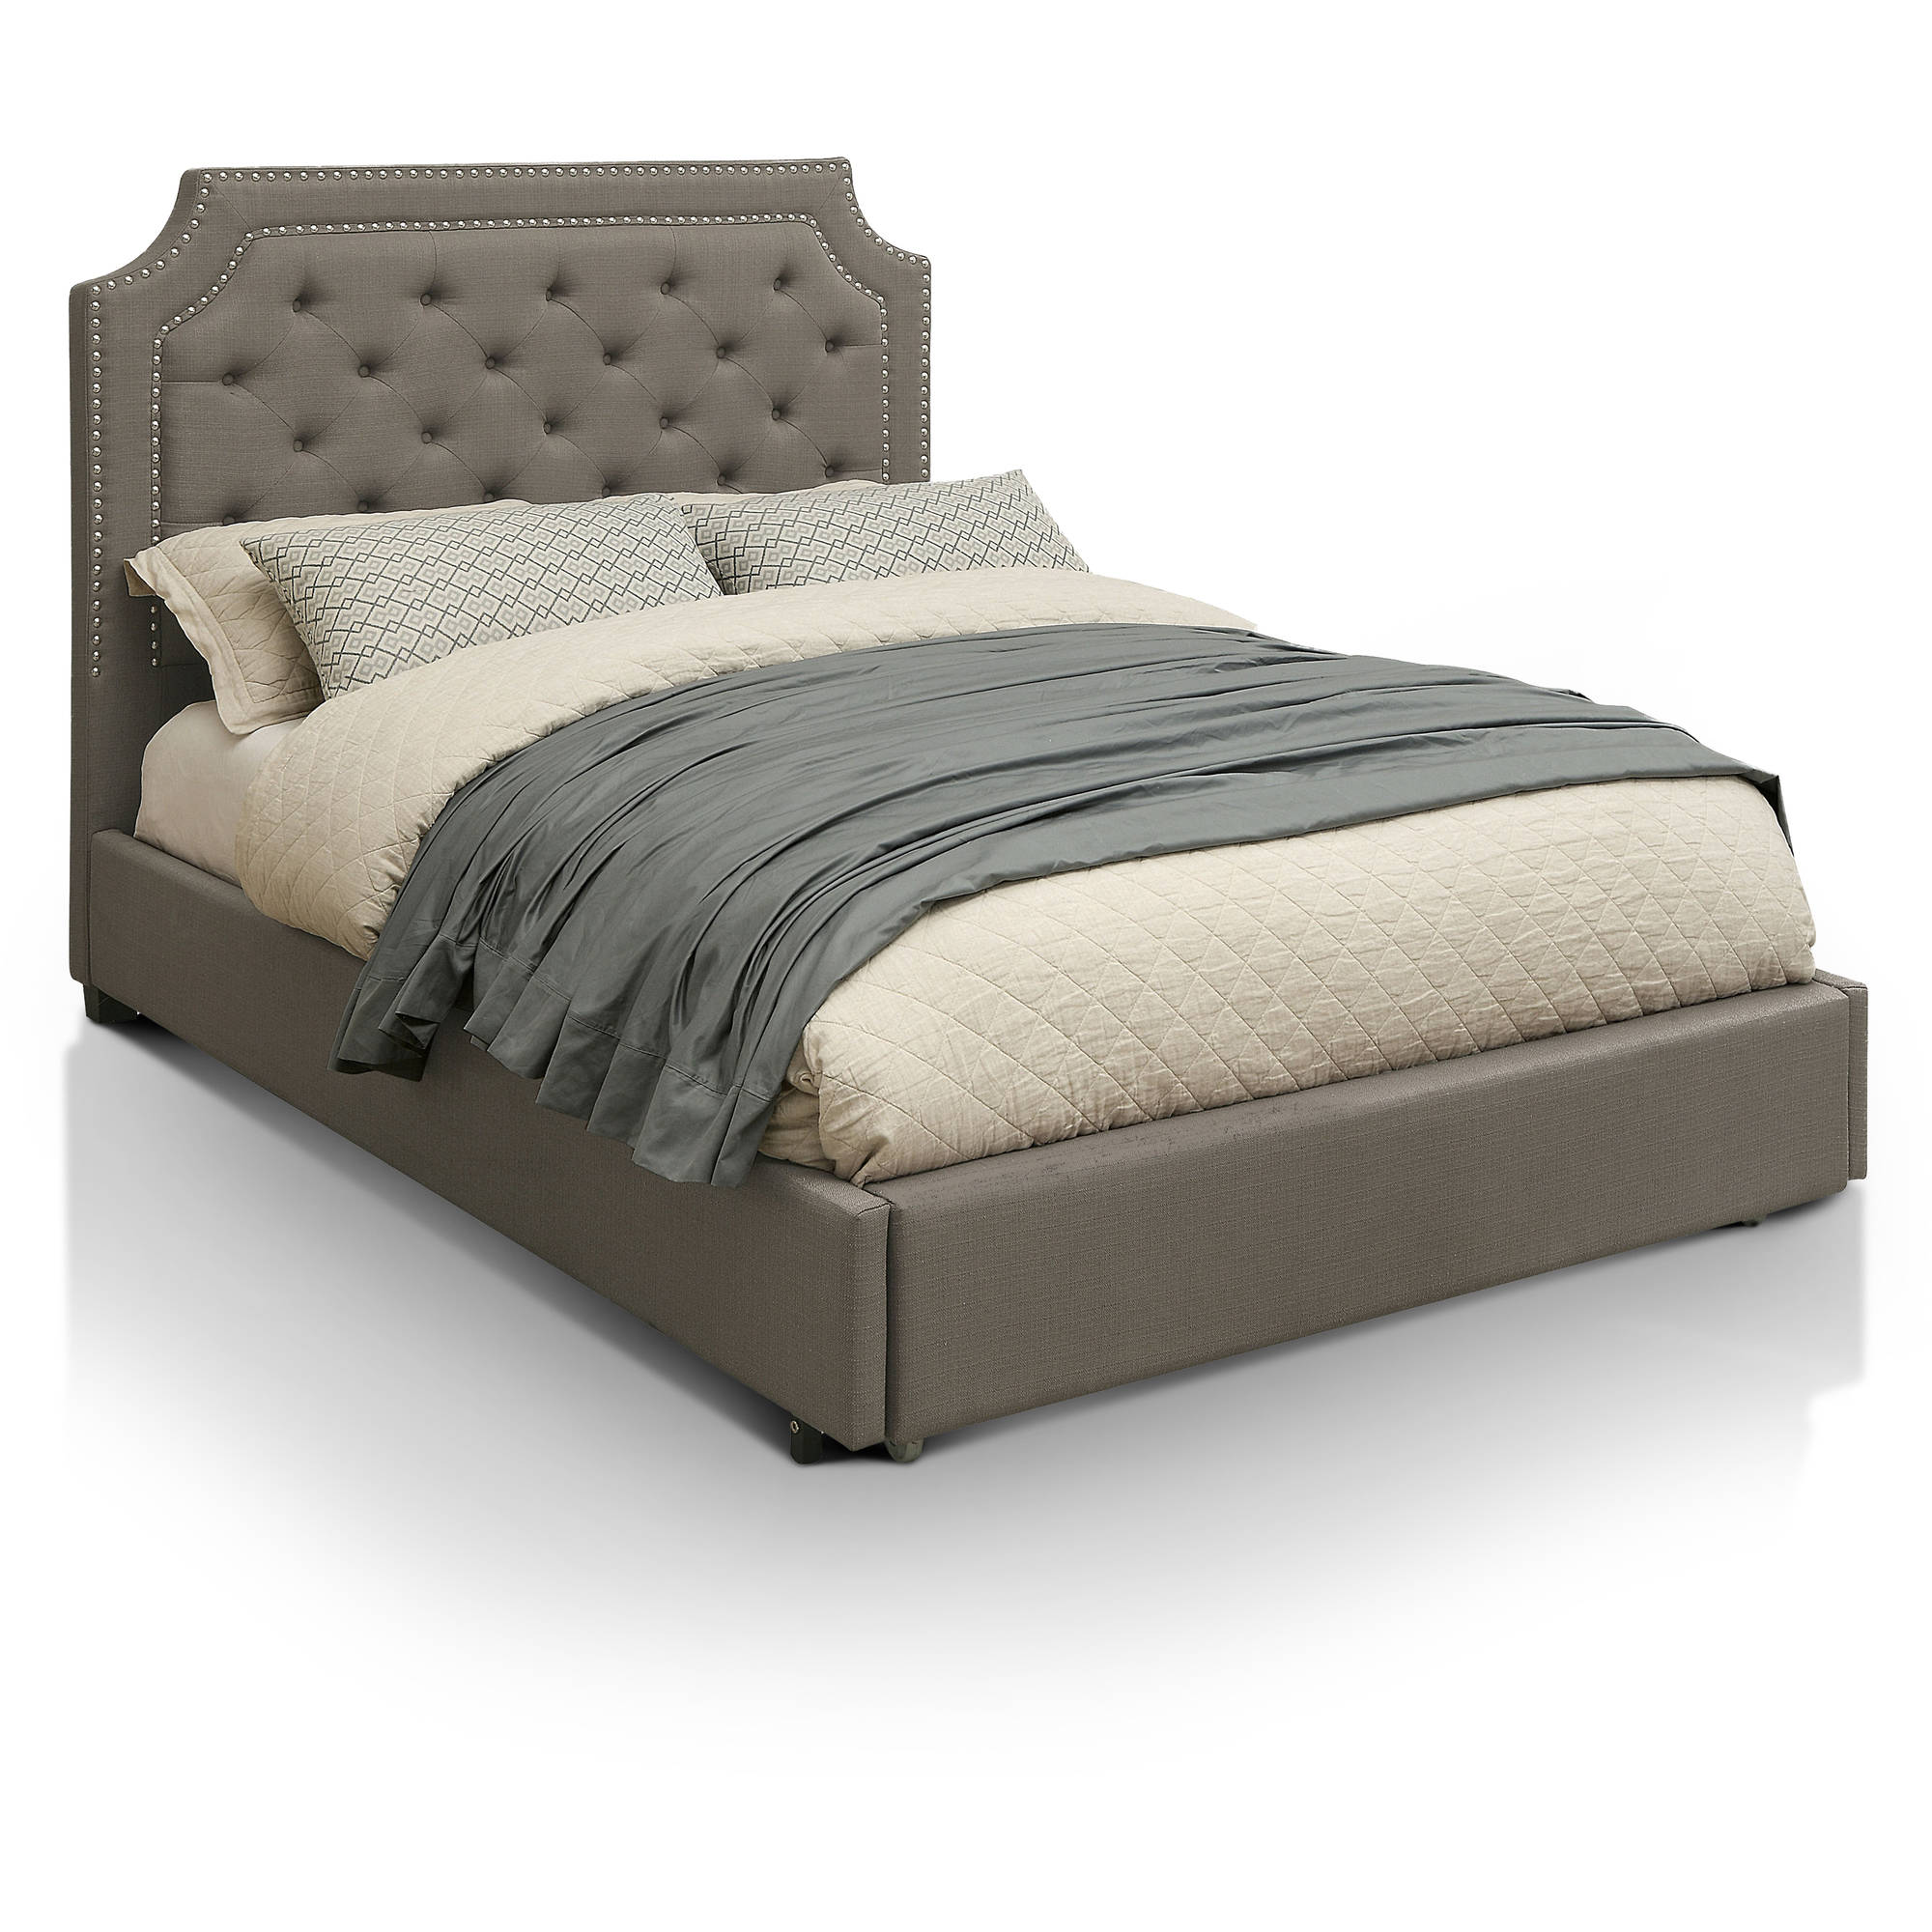 Furniture of America Tallulah Pull-Out Footboard Storage Drawer California King Bed, Gray